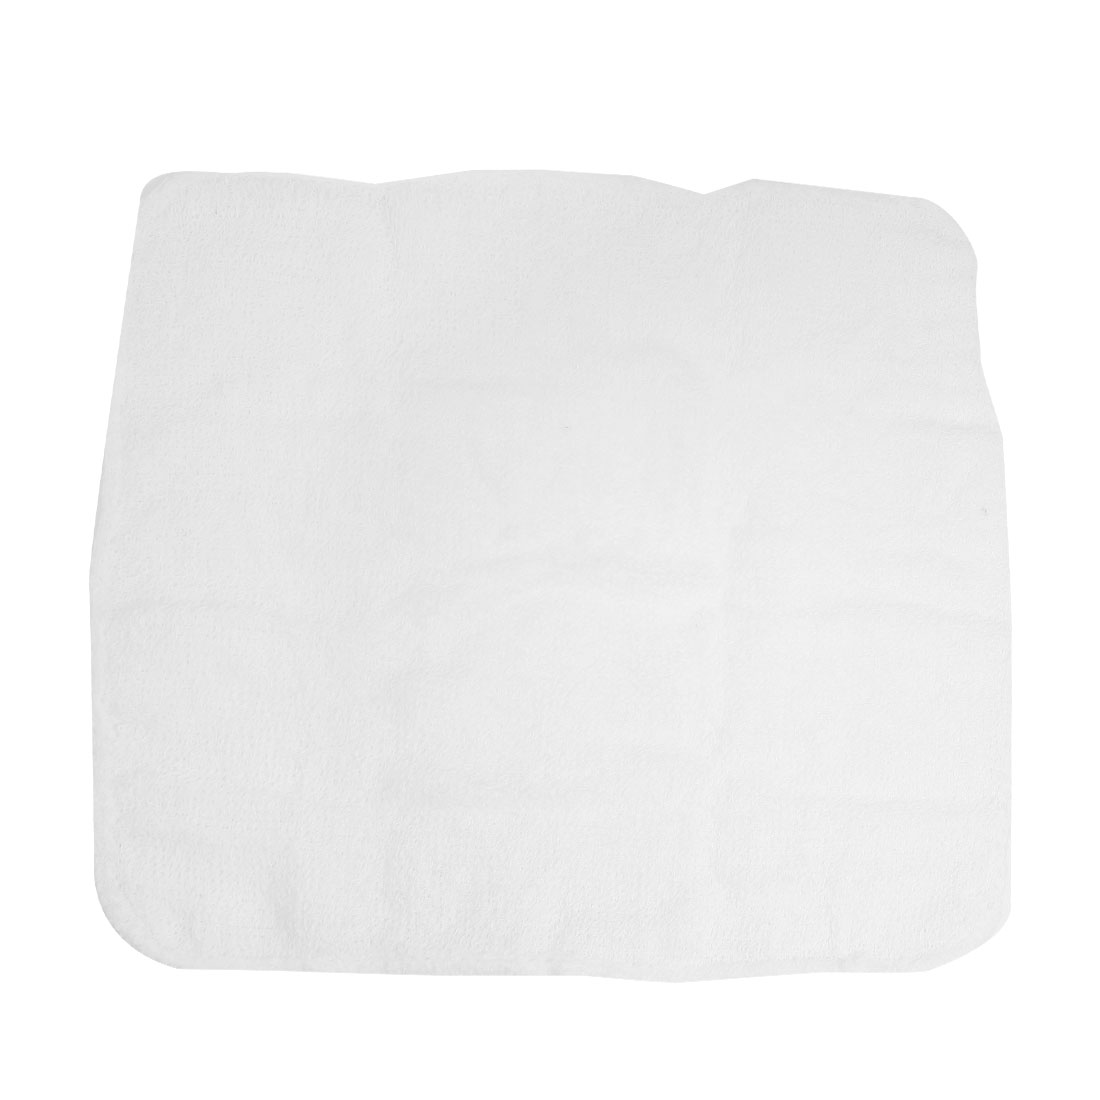 Travel Yellow White Capsule Shape Case Square Face Cleaning Towel